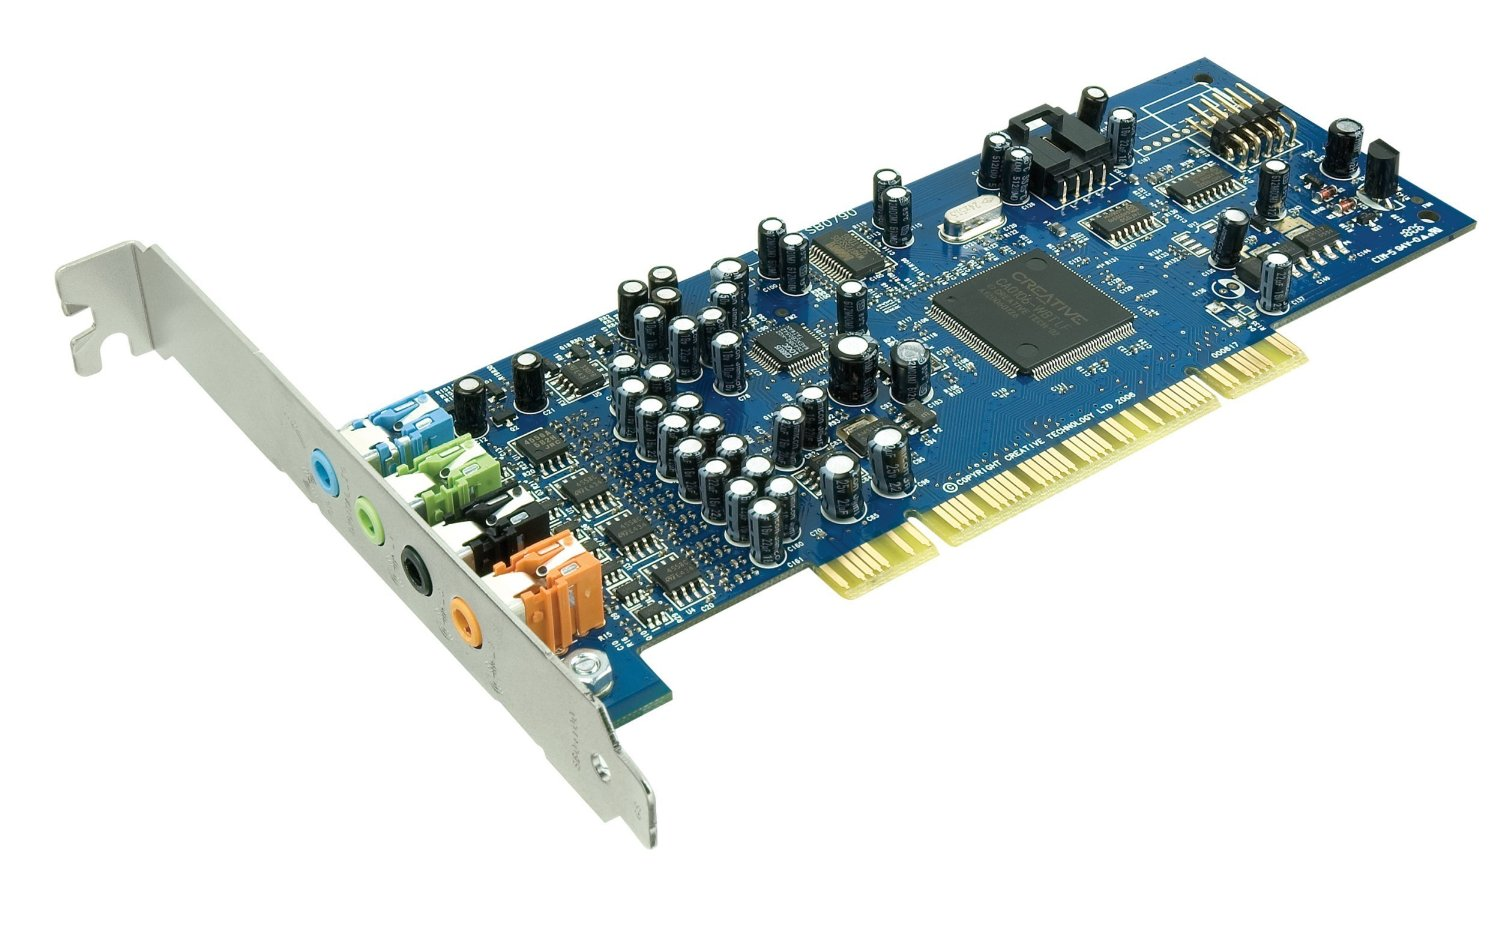 Creative Labs SB0790 PCI Sound Blaster X-Fi Xtreme Audio バルク